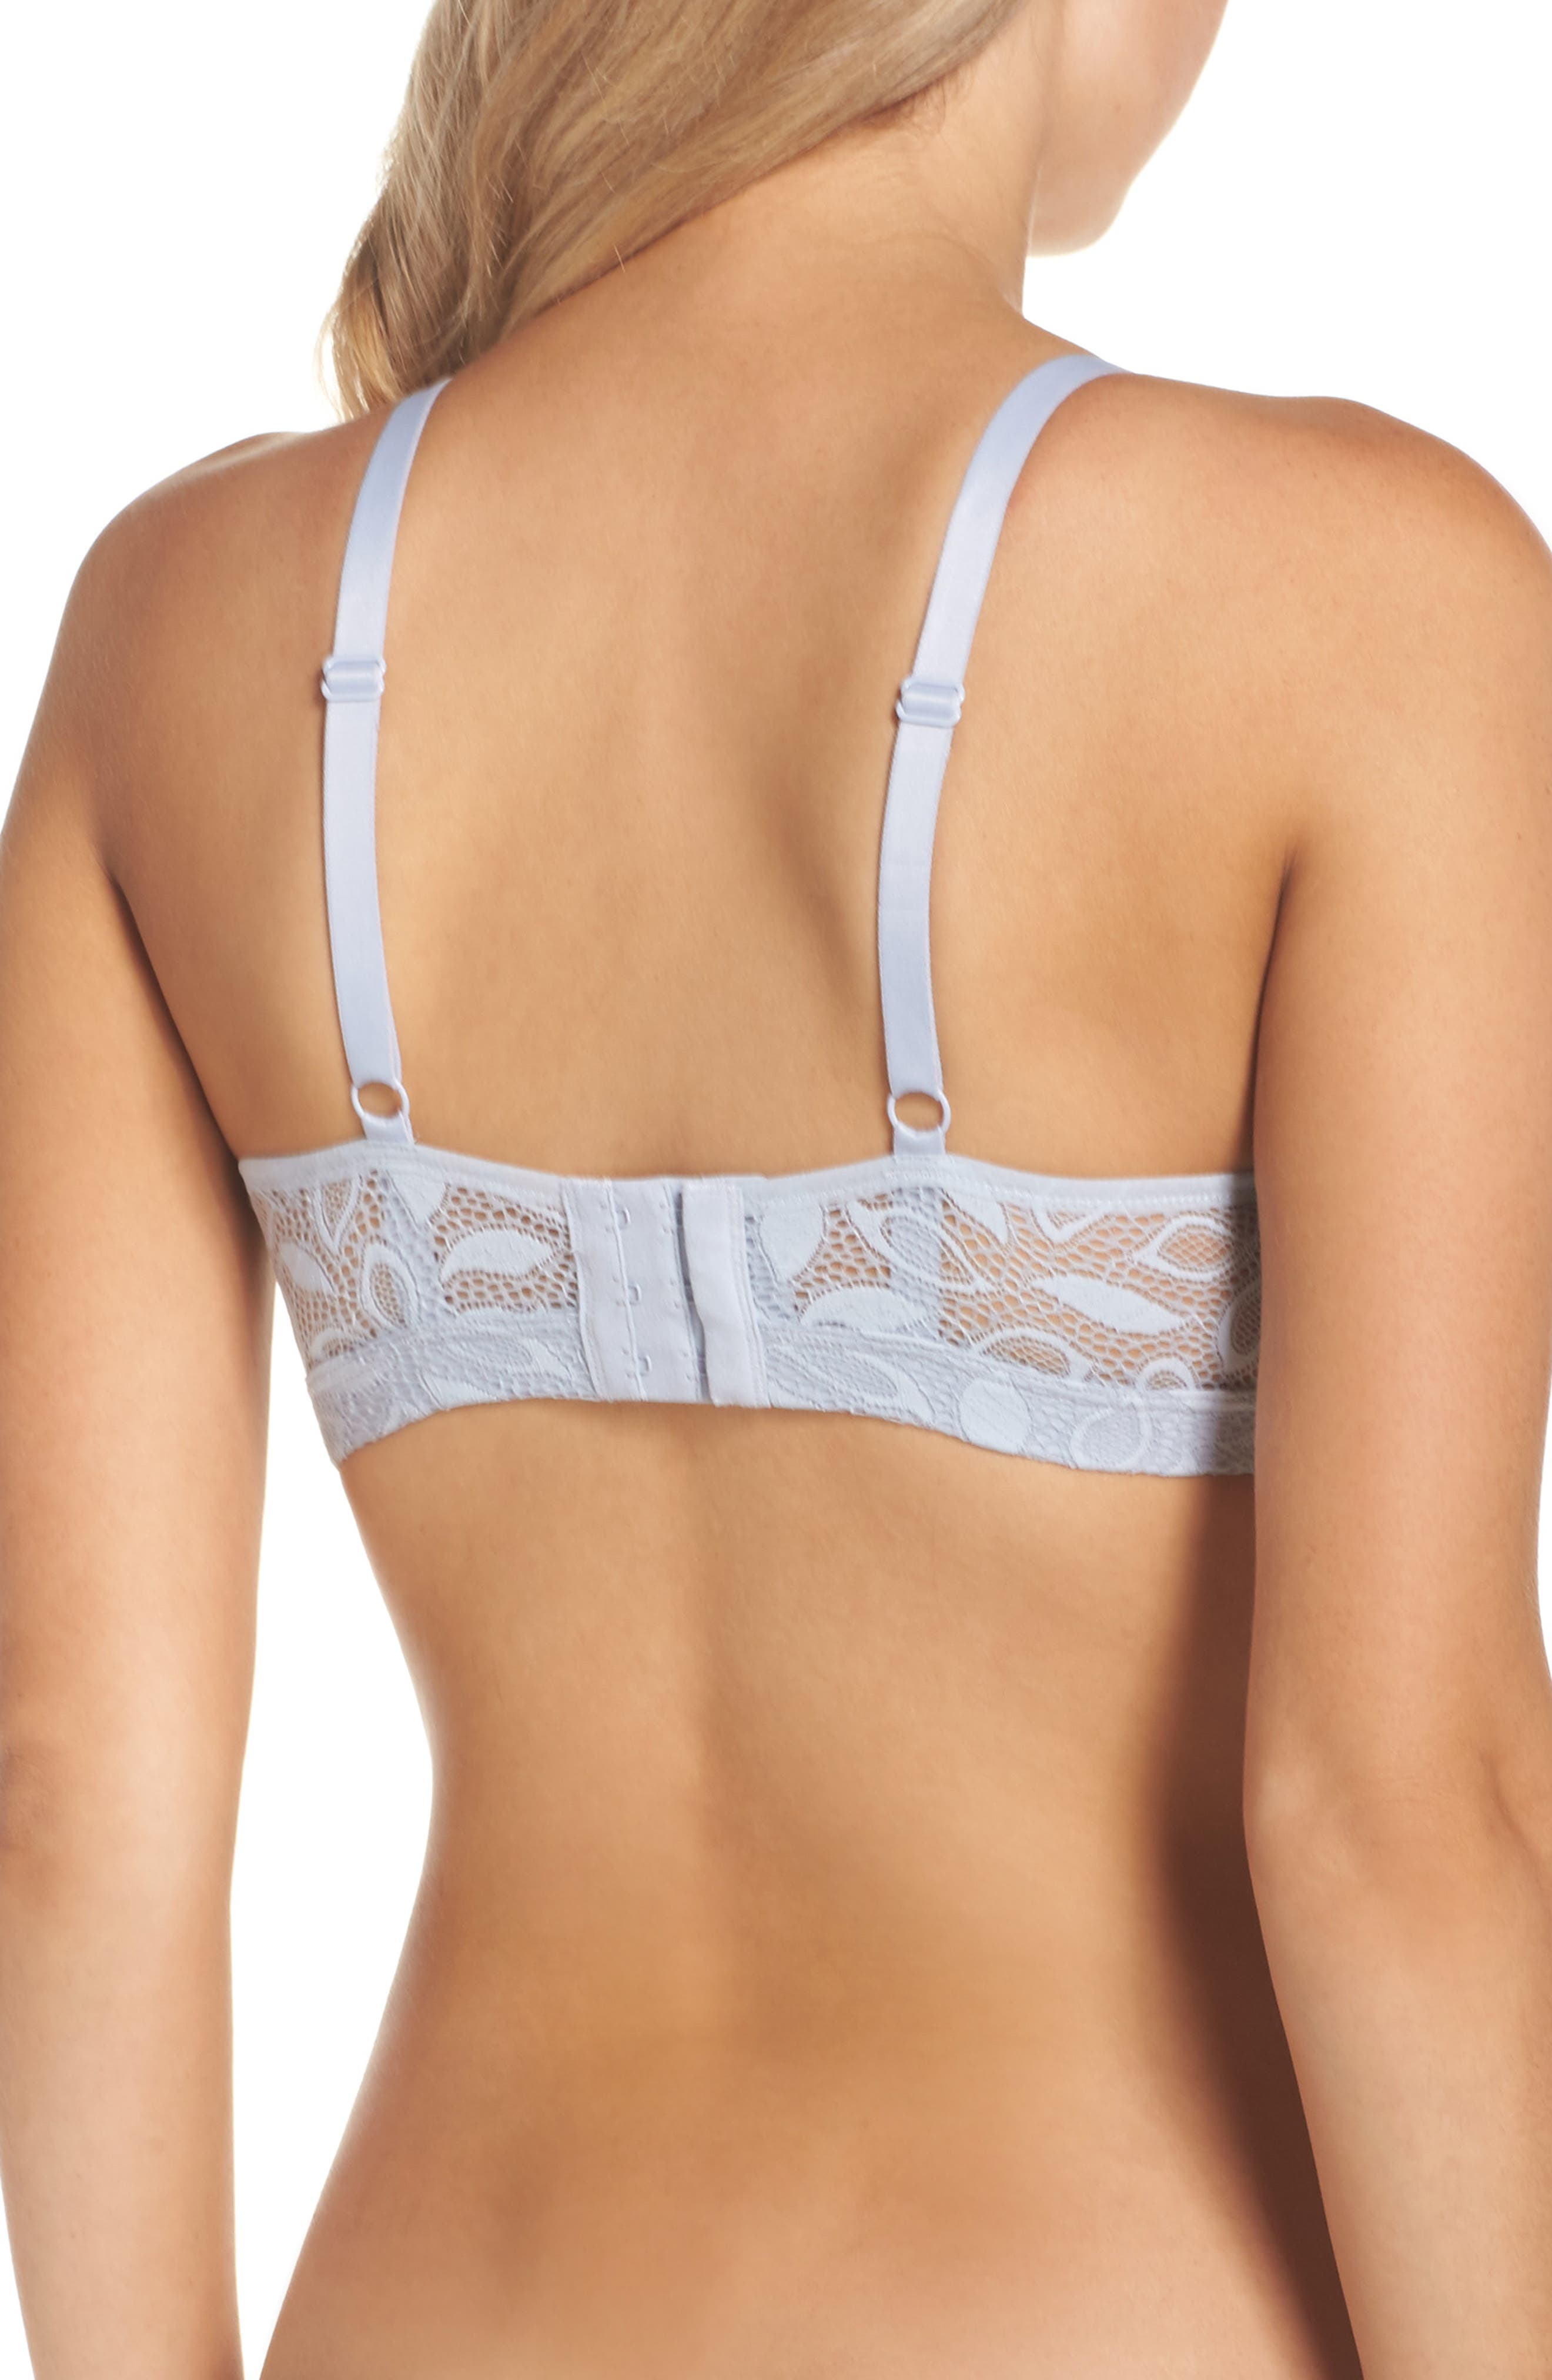 Alternate Image 2  - Epure by Lise Charmel Mosaique Florale Wireless Bra